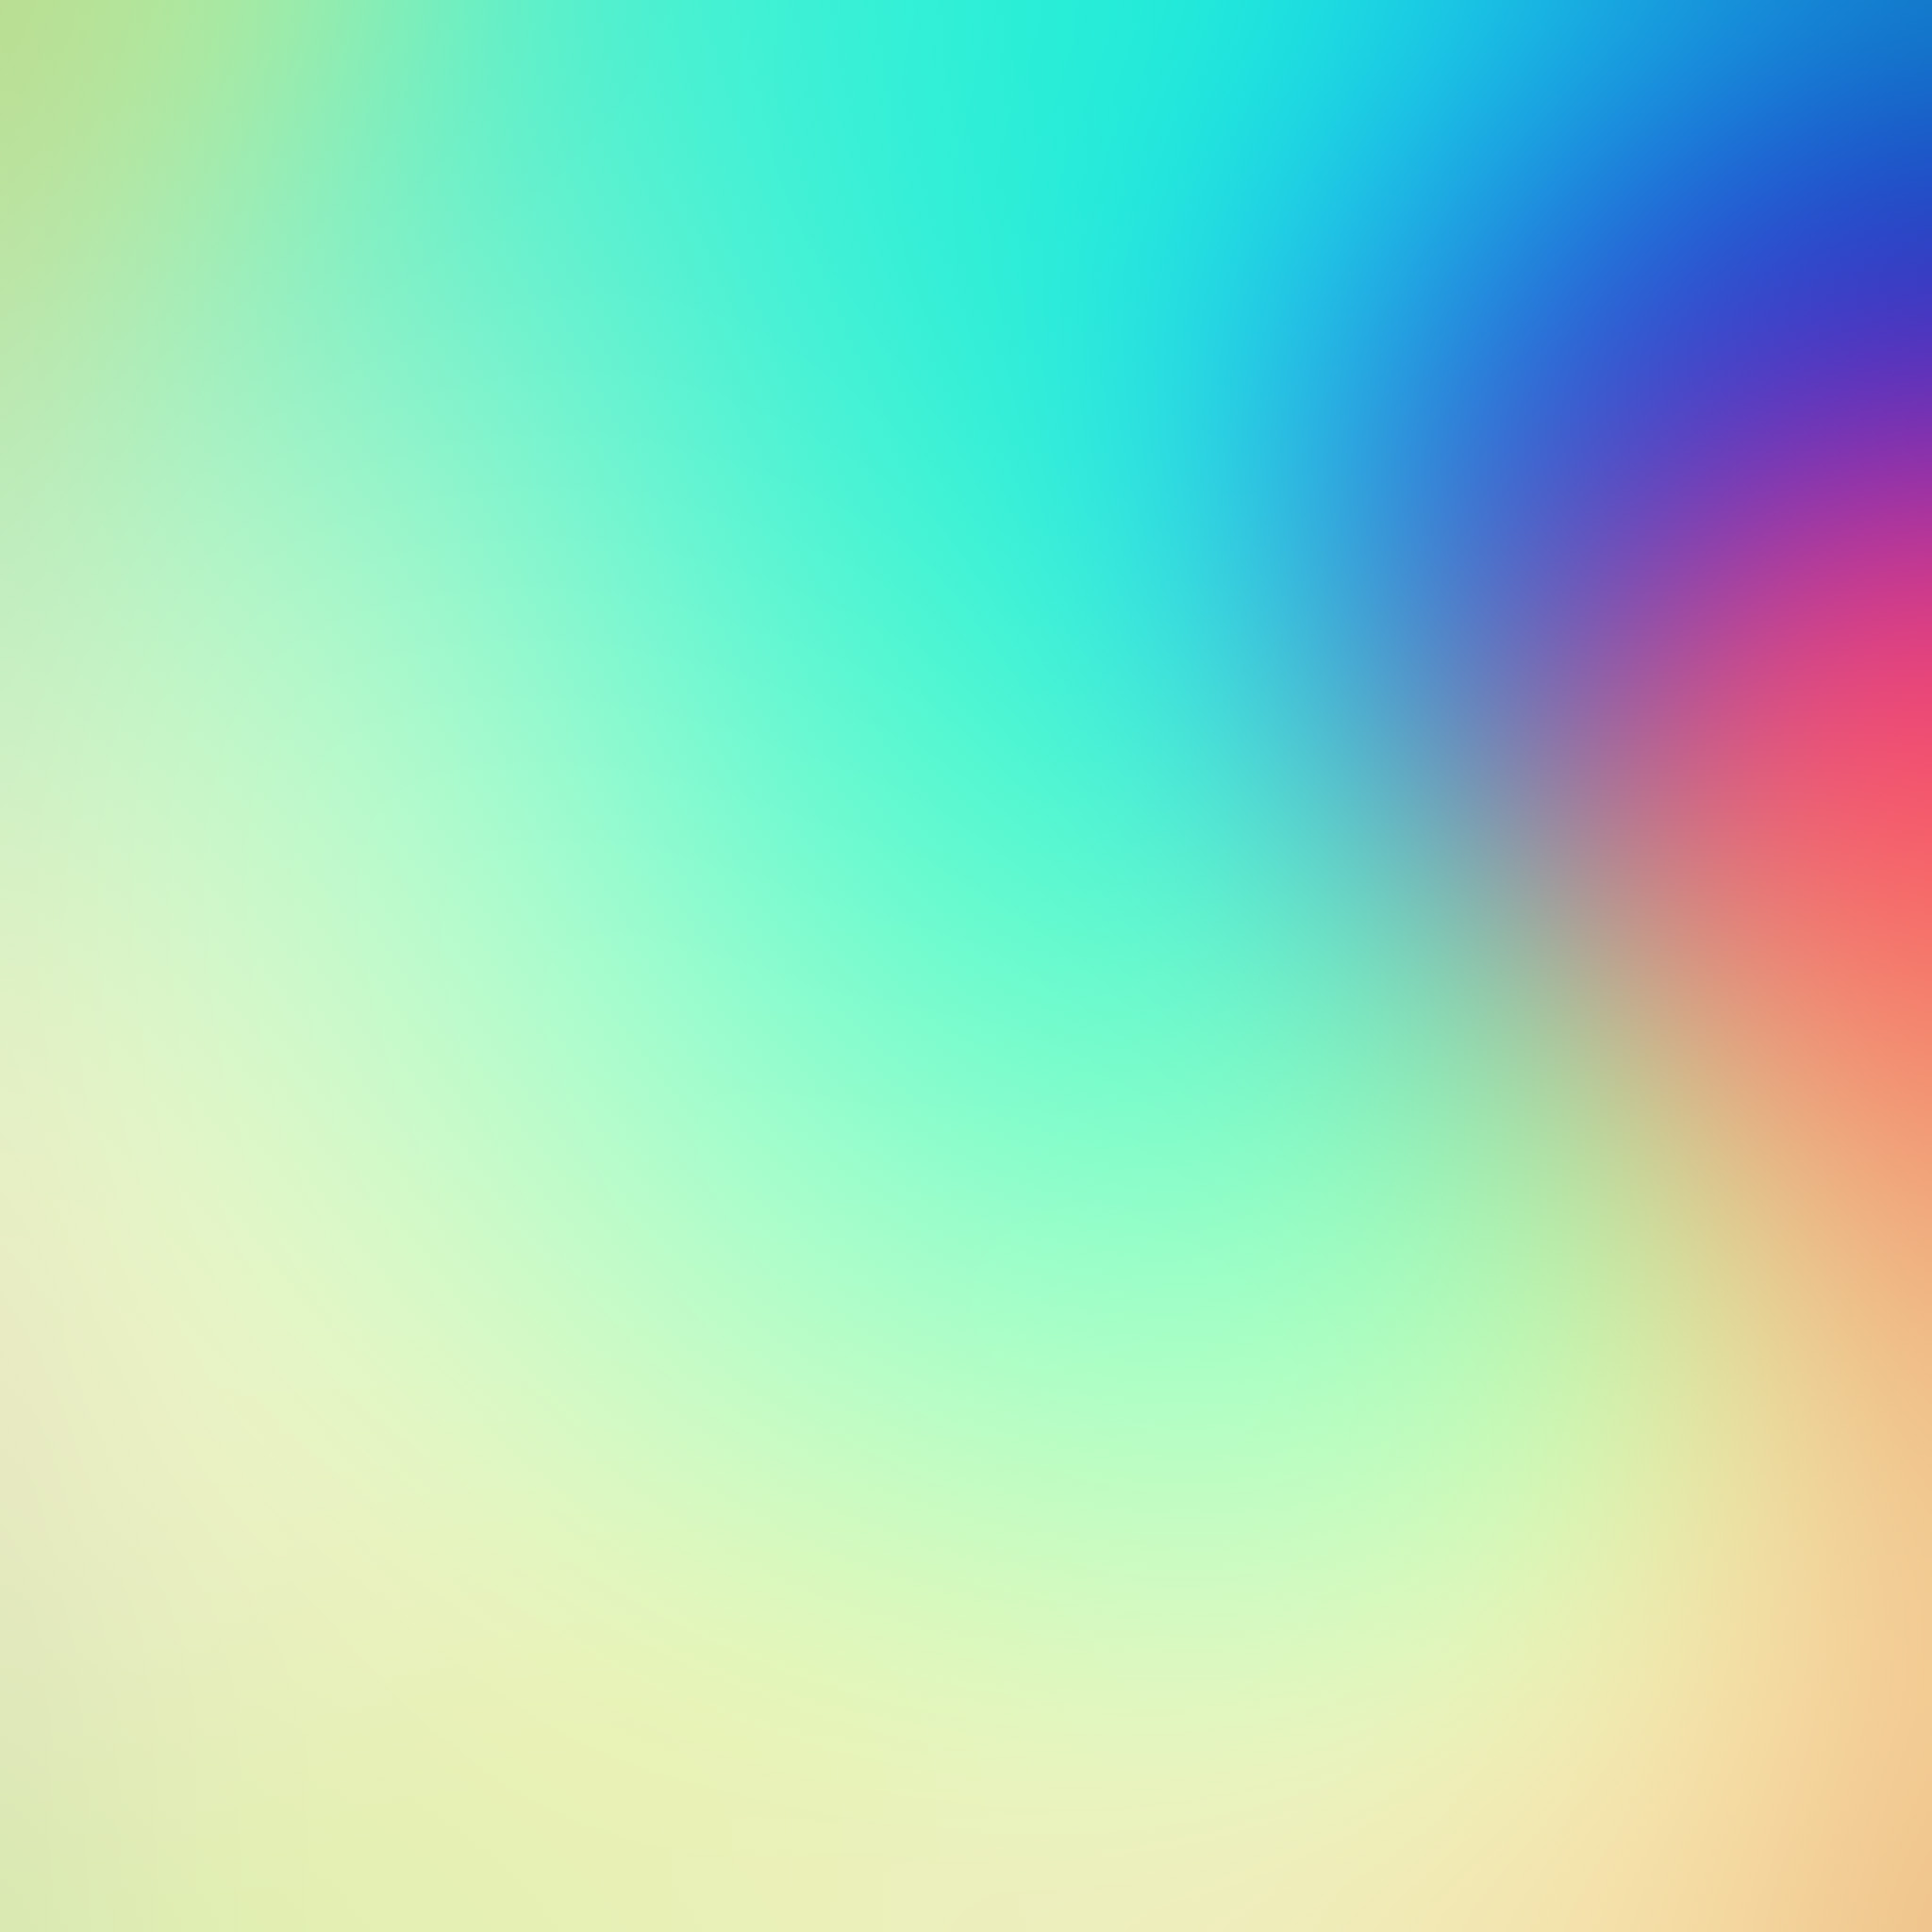 essay rainbow The rainbow is one of nature's most beautiful phenomena however, to spot a rainbow, you ought to be in the right place at the right time are you curious to know what the colors of this beautiful arc actually mean.